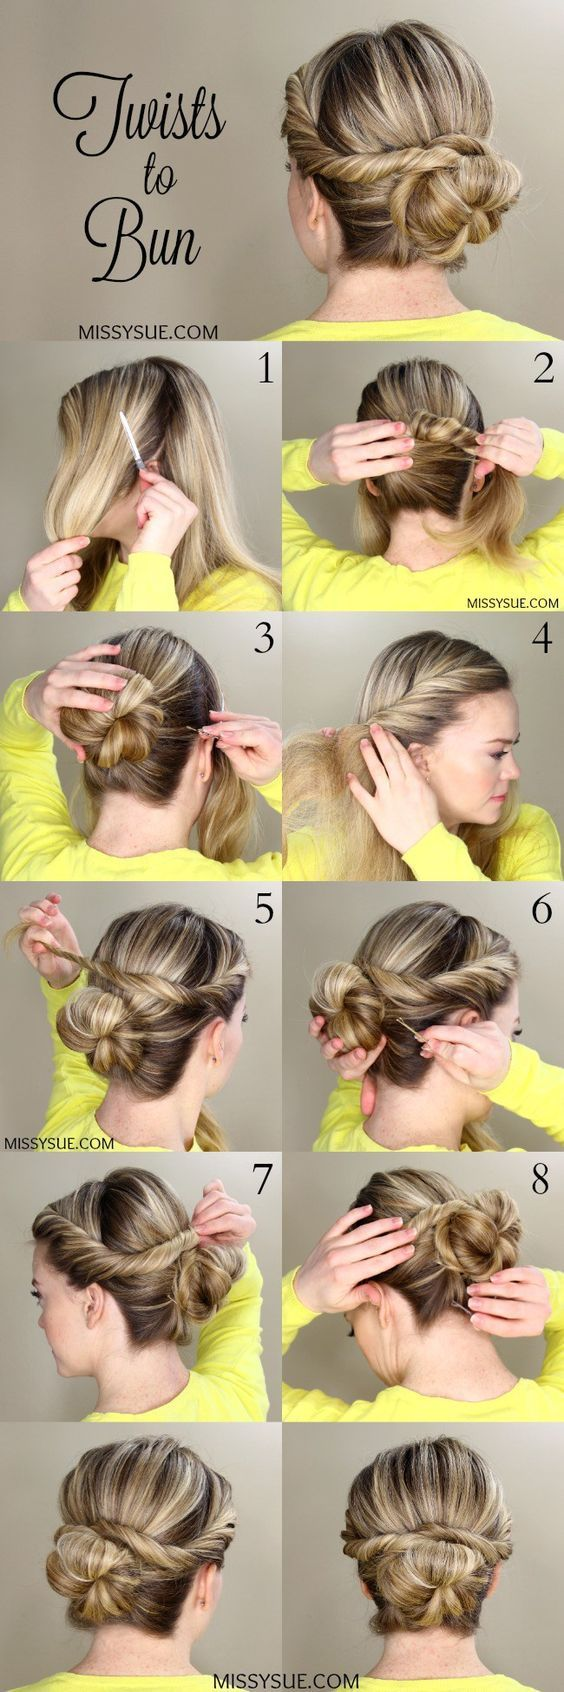 19 Hair Tutorials for 2016 Summer